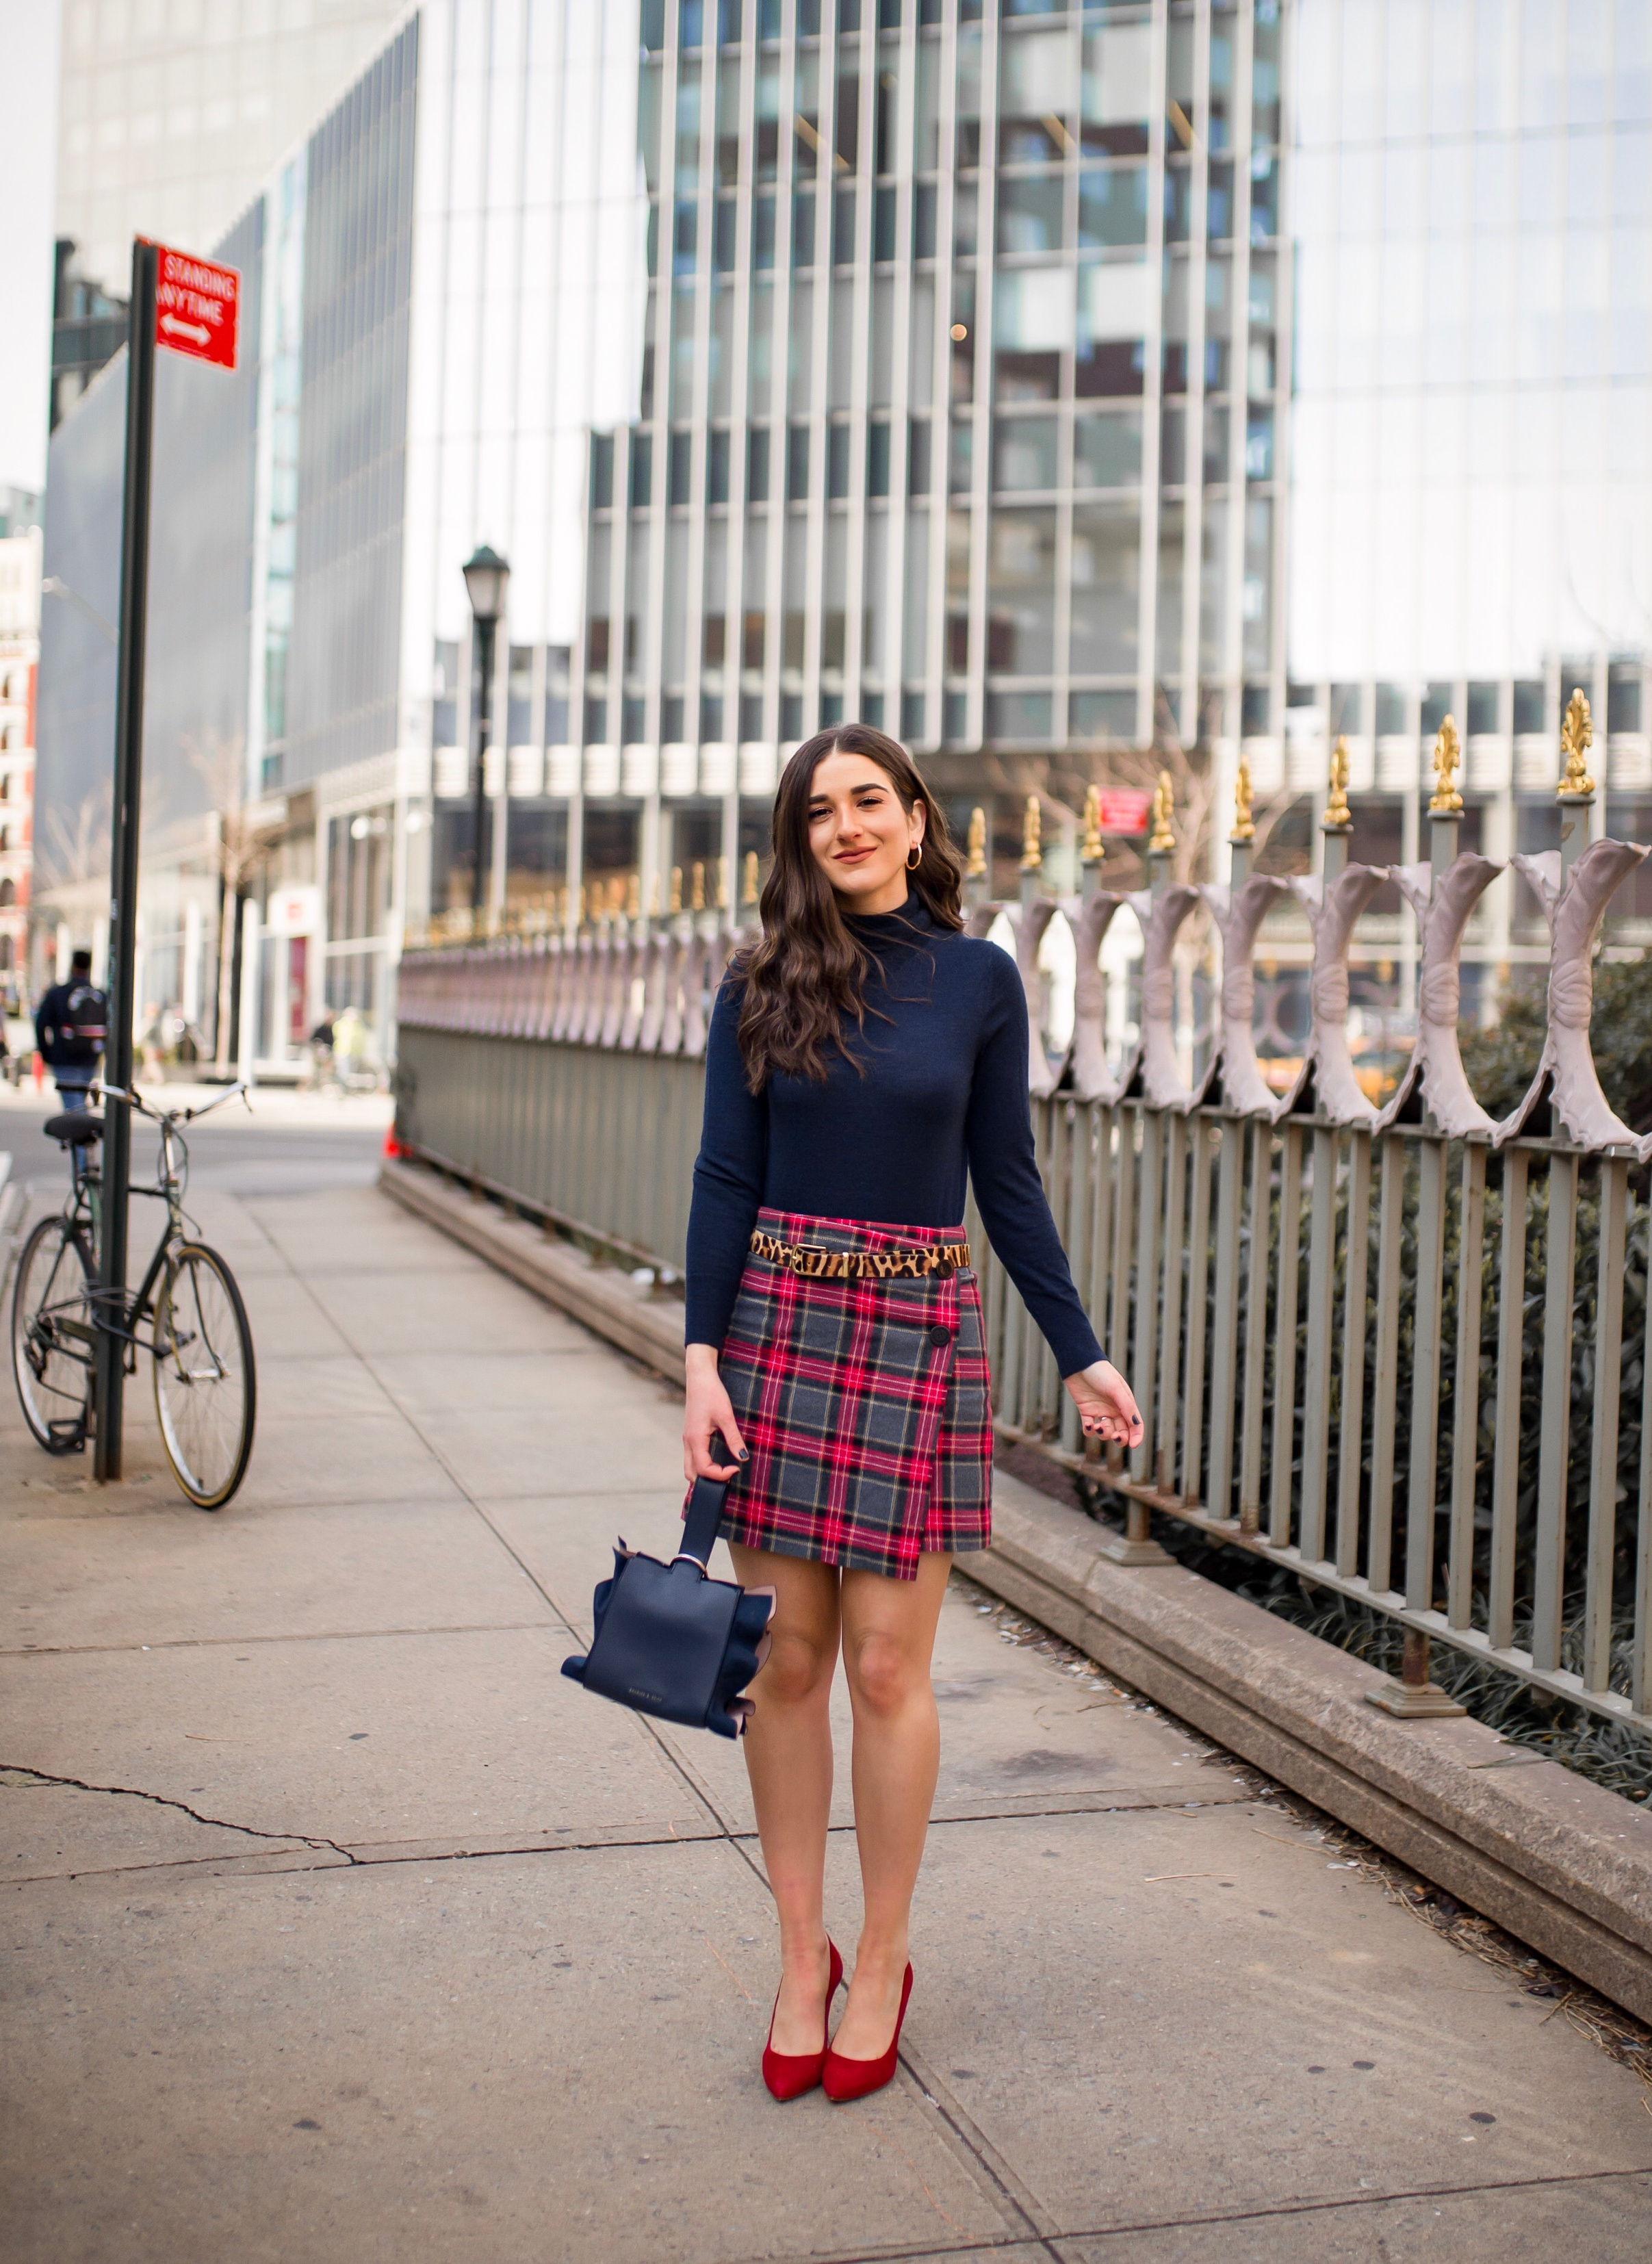 How NYFW Changed From My 1st To 12th Season Plaid Skirt Red Heels Esther Santer Fashion Blog NYC Street Style Blogger Outfit OOTD Trendy Shopping Navy Turtleneck Hair Goals Wear Winter Fall Shop Jcrew H&M Banana Republic Leopard  Belt Accessories Bag.jpg